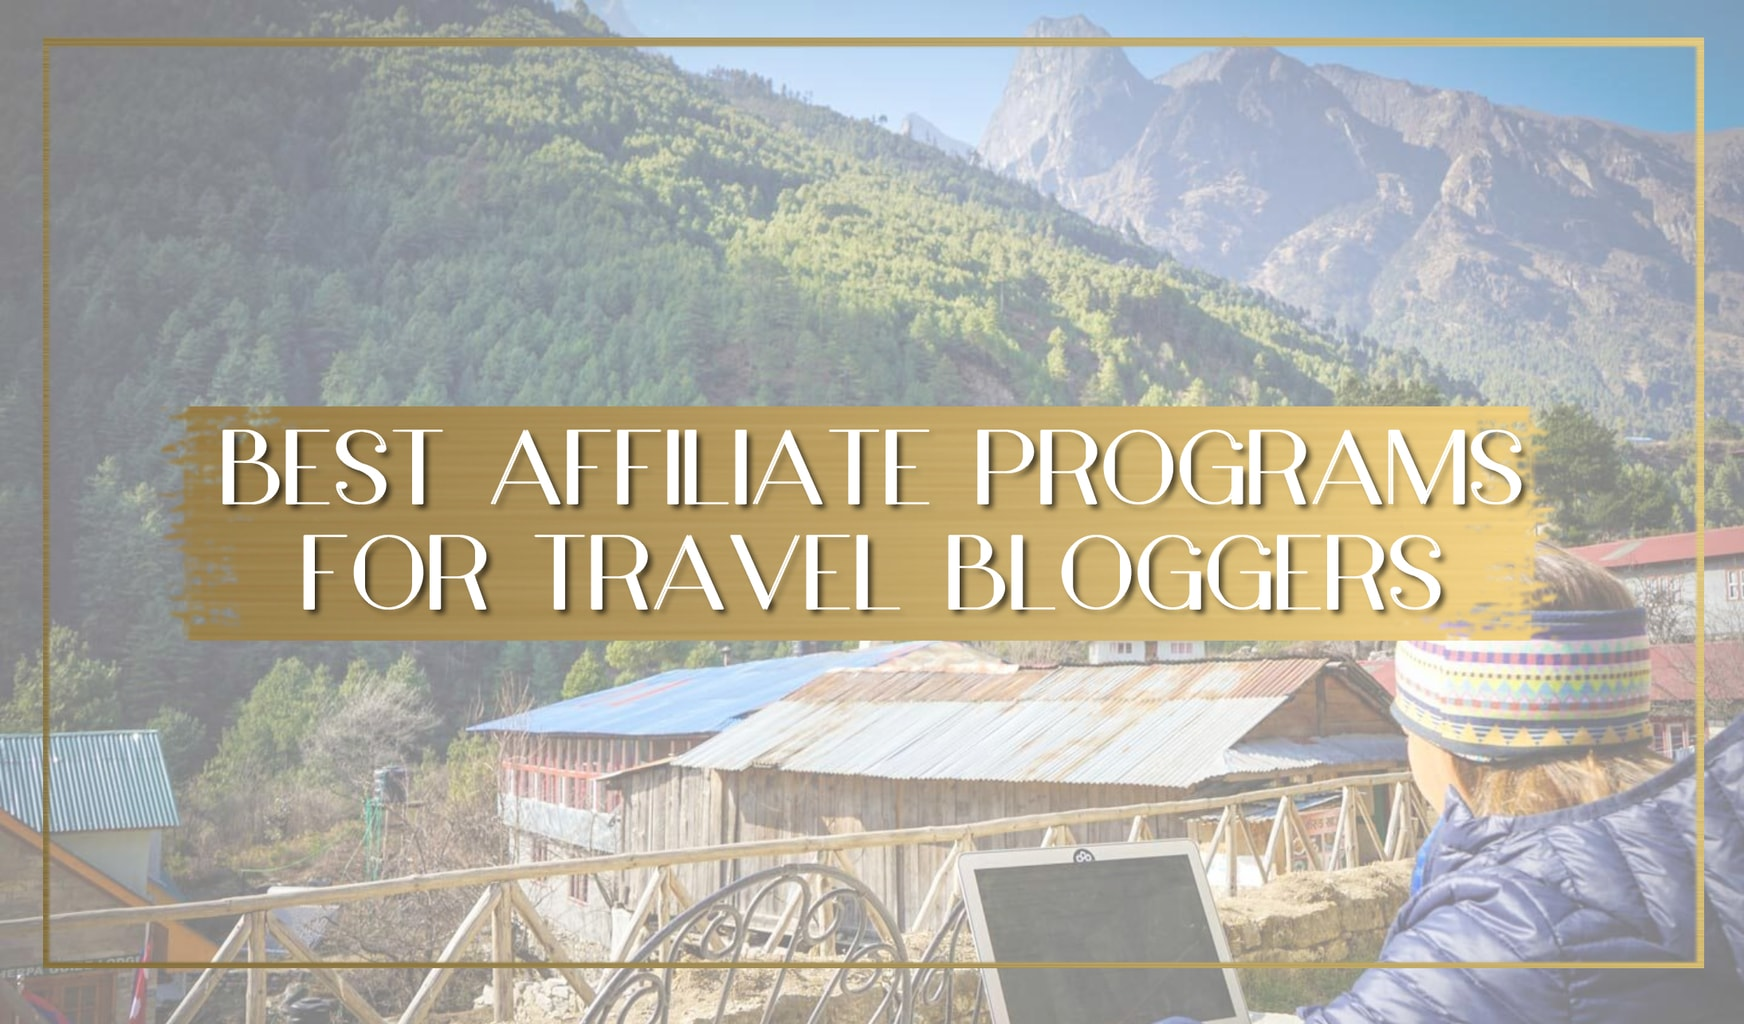 Best affiliate programs for travel bloggers main